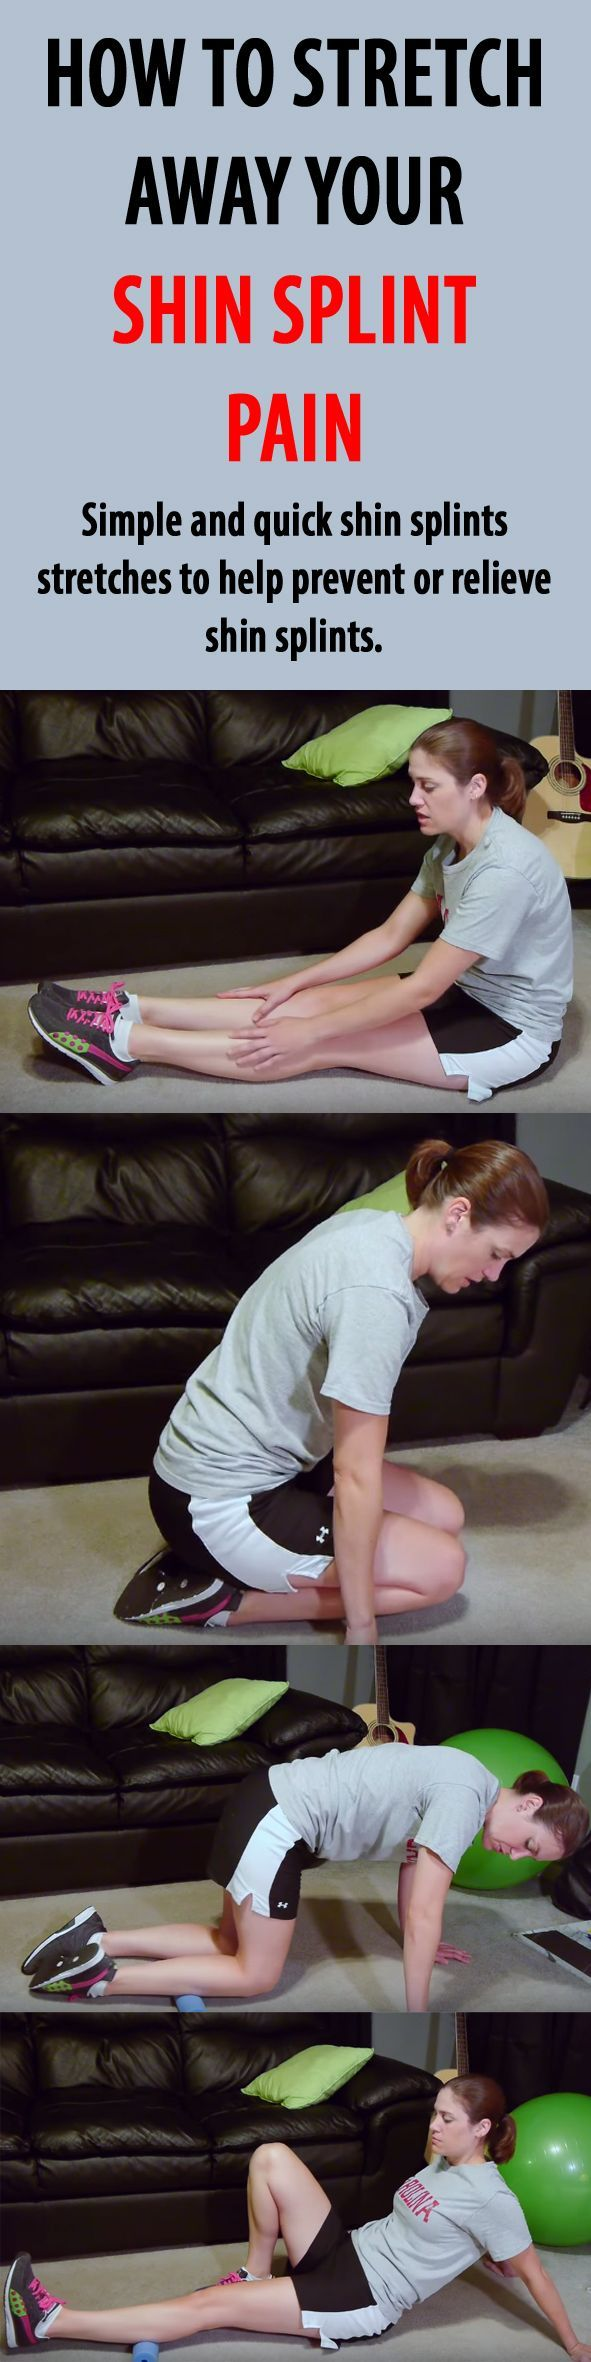 Stretch away your shin splint pain with these quick and easy moves